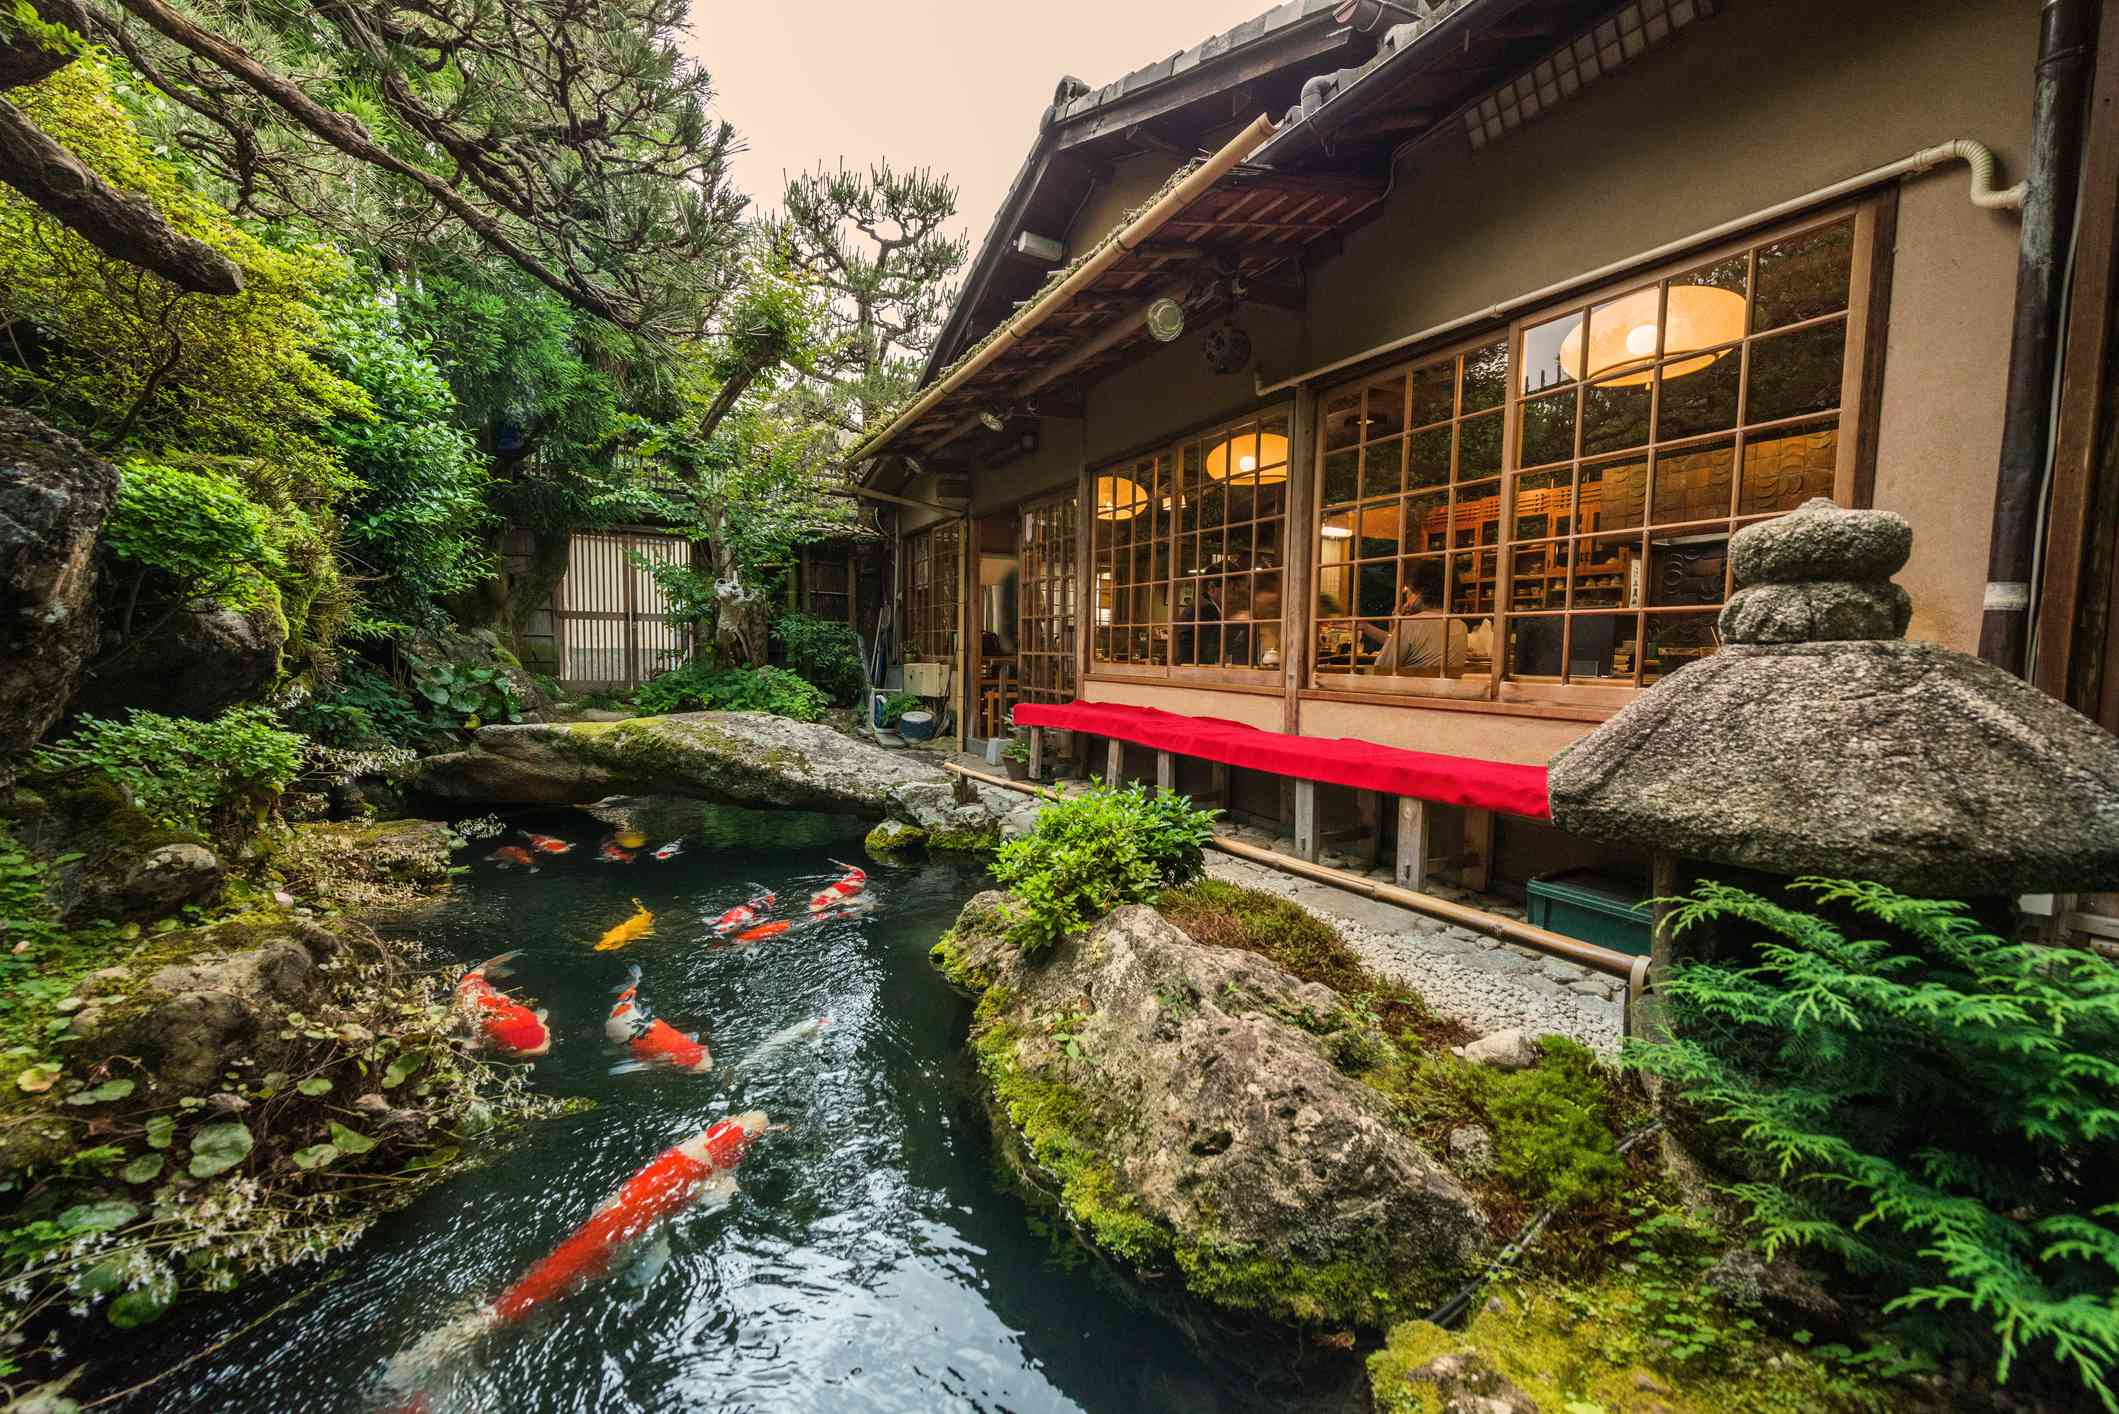 A koi pond and mossy boulders next to a house.